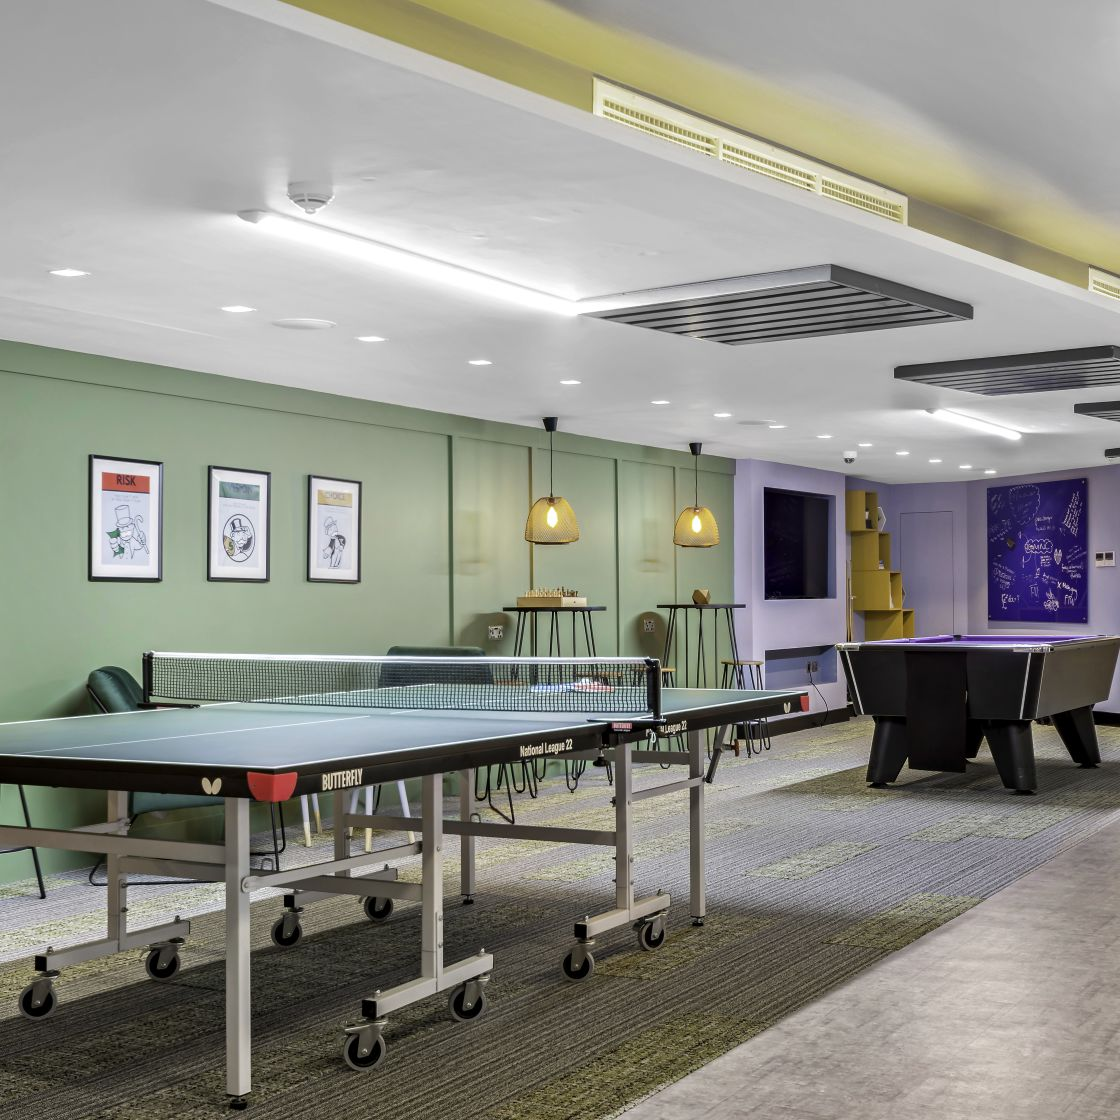 Games are with Table Tennis and Pool Table at IconInc, The Edge. Student Accommodation in Leeds